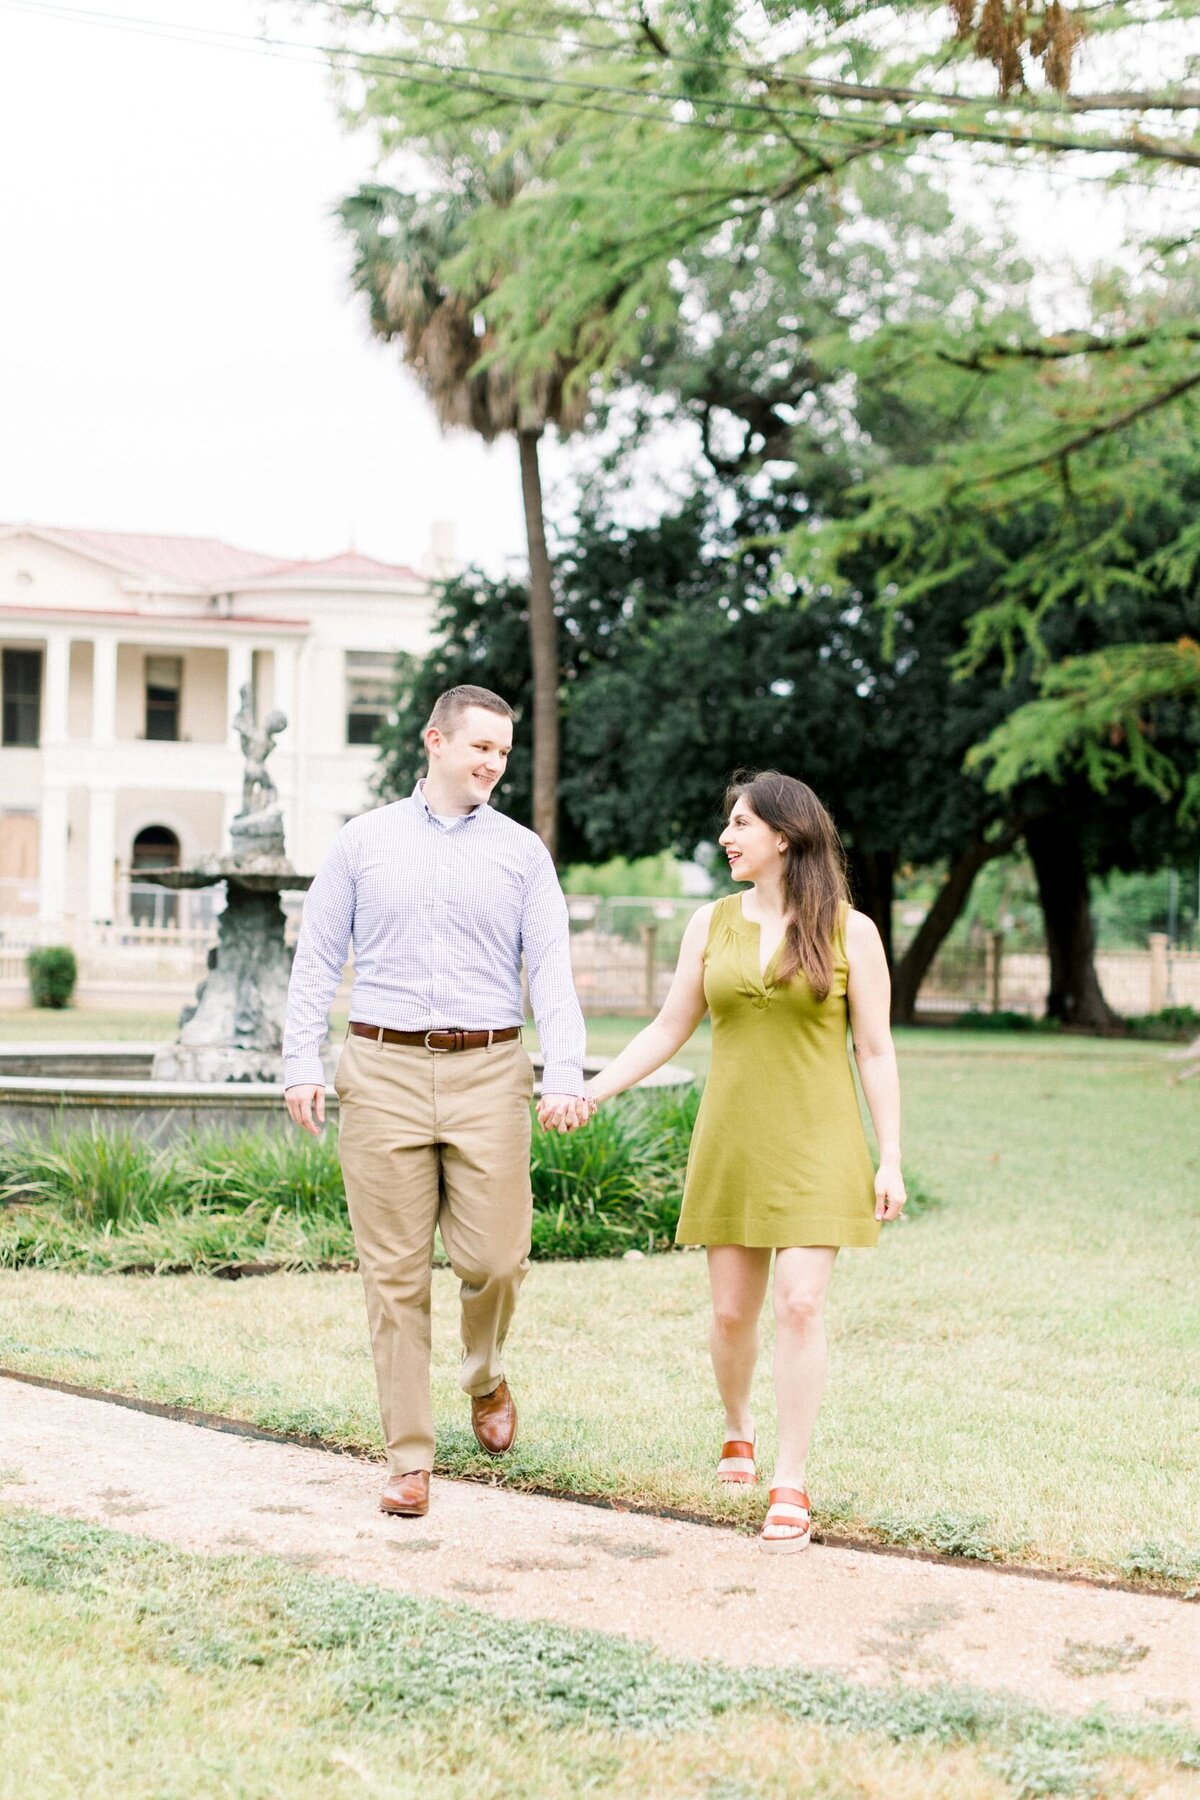 KingWilliamEngagement-AnnaKayPhotography-SanAntonioWeddingPhotographer-10